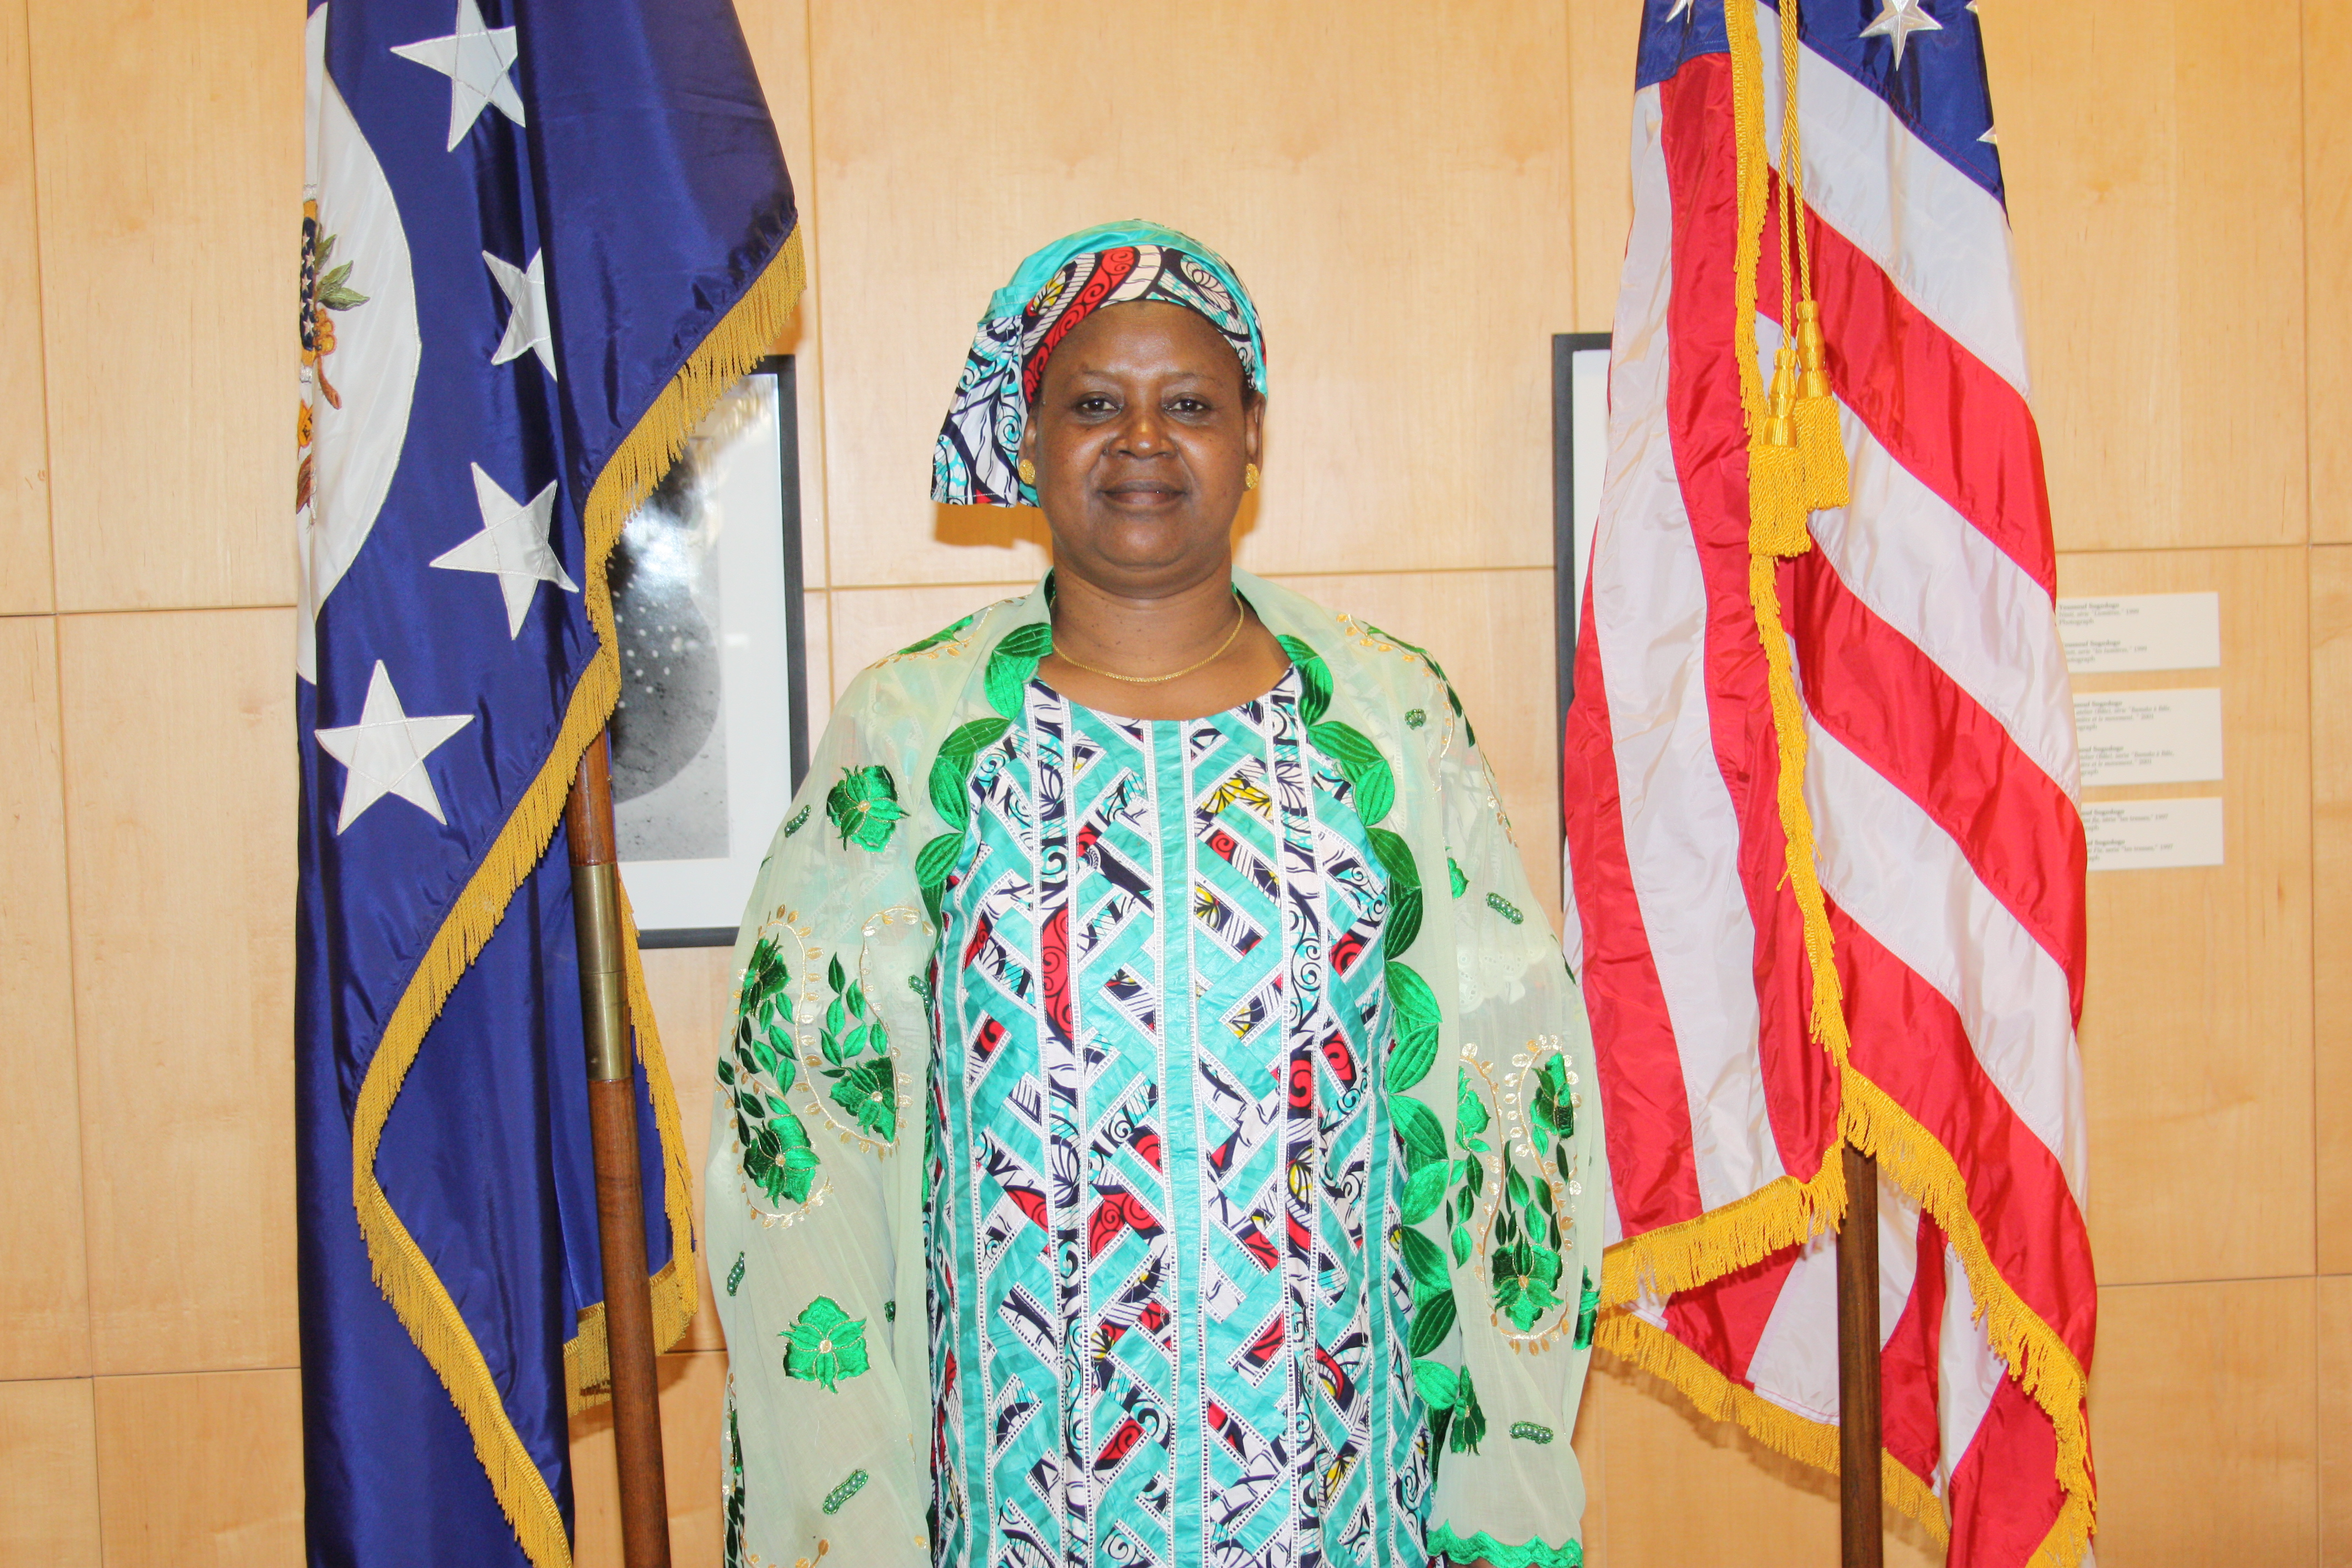 Women dressed in African print attire stands between American flag and unknown other flag